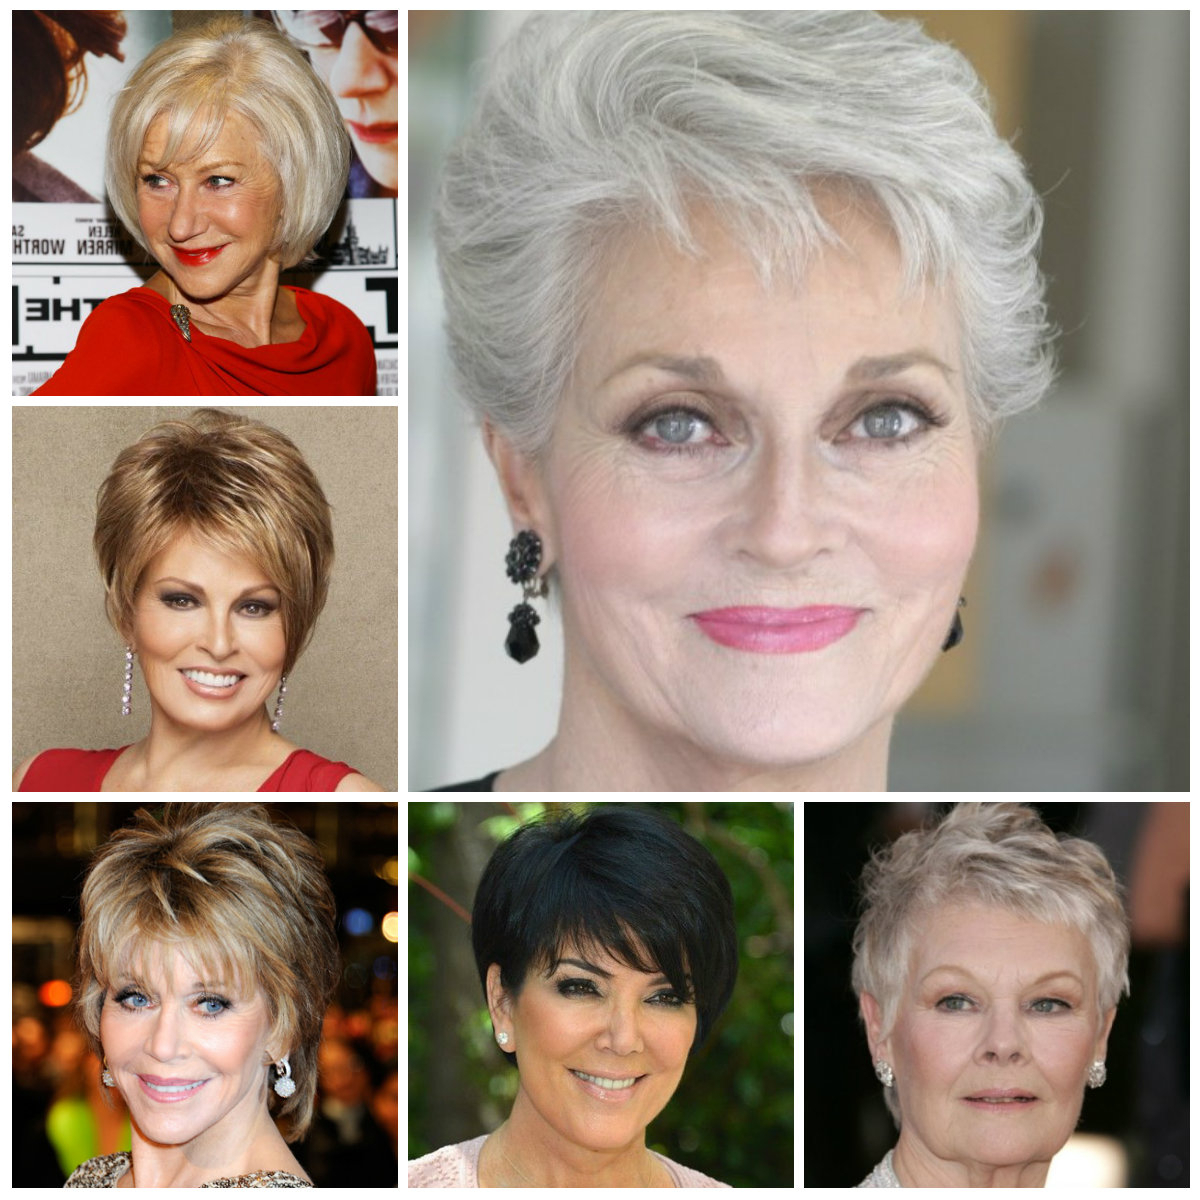 6 Stunning Short Haircuts For Women Over 40 | Indian Makeup And Intended For Stylish Short Haircuts For Women Over 40 (Gallery 12 of 25)